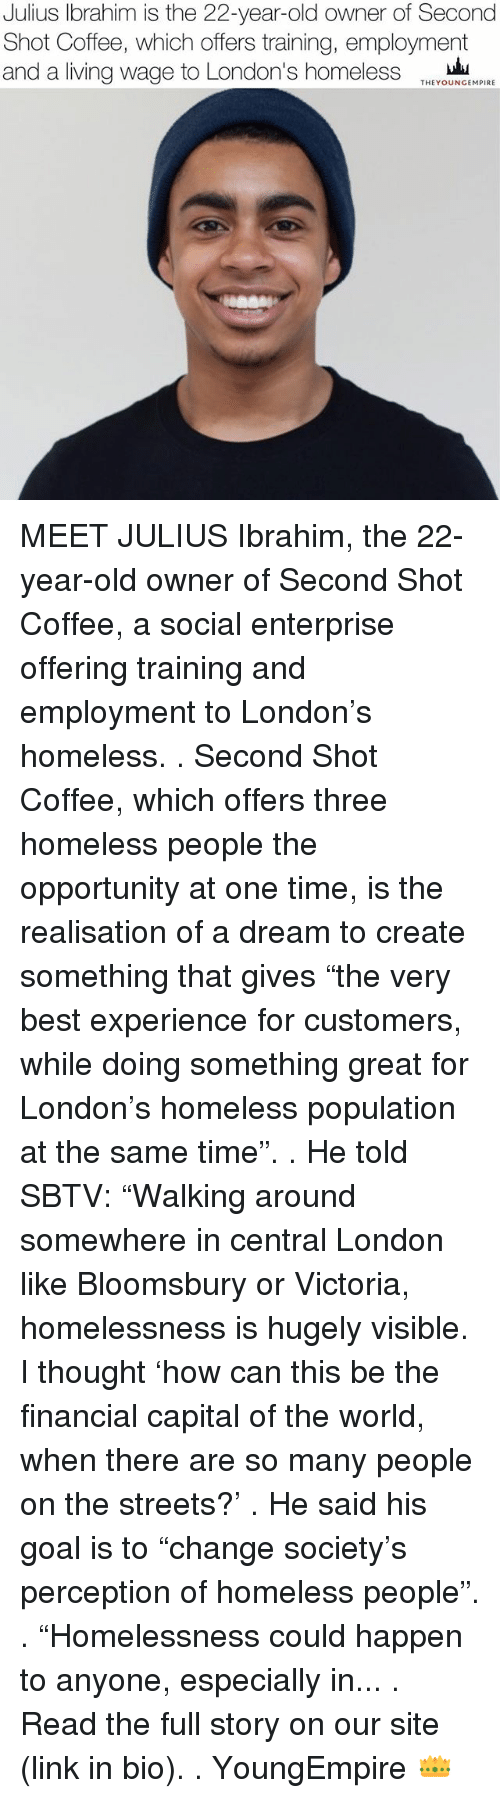 """A Dream, Homeless, and Memes: Julius Ibrahim is the 22-year-old owner of Second  Shot Coffee, which offers training, employment  and a living wage to London's homeless  THEYOUNGEMPIRE MEET JULIUS Ibrahim, the 22-year-old owner of Second Shot Coffee, a social enterprise offering training and employment to London's homeless. . Second Shot Coffee, which offers three homeless people the opportunity at one time, is the realisation of a dream to create something that gives """"the very best experience for customers, while doing something great for London's homeless population at the same time"""". . He told SBTV: """"Walking around somewhere in central London like Bloomsbury or Victoria, homelessness is hugely visible. I thought 'how can this be the financial capital of the world, when there are so many people on the streets?' . He said his goal is to """"change society's perception of homeless people"""". . """"Homelessness could happen to anyone, especially in... . Read the full story on our site (link in bio). . YoungEmpire 👑"""